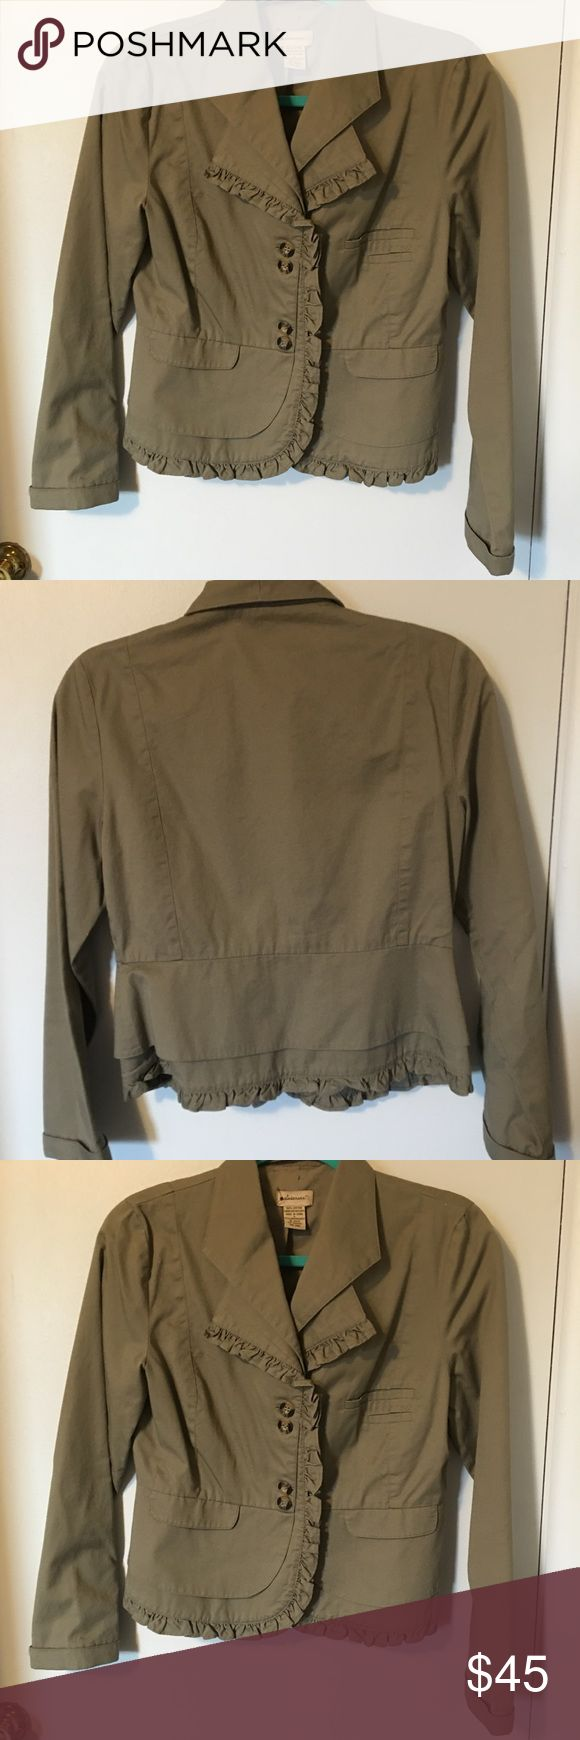 Elevenses from Anthropologie olive green jacket size 6. Elevenses by Anthropologie olive green jacket in a size 6.  Excellent condition only wear is around the label.  Great staple jacket. Anthropologie Jackets & Coats Blazers